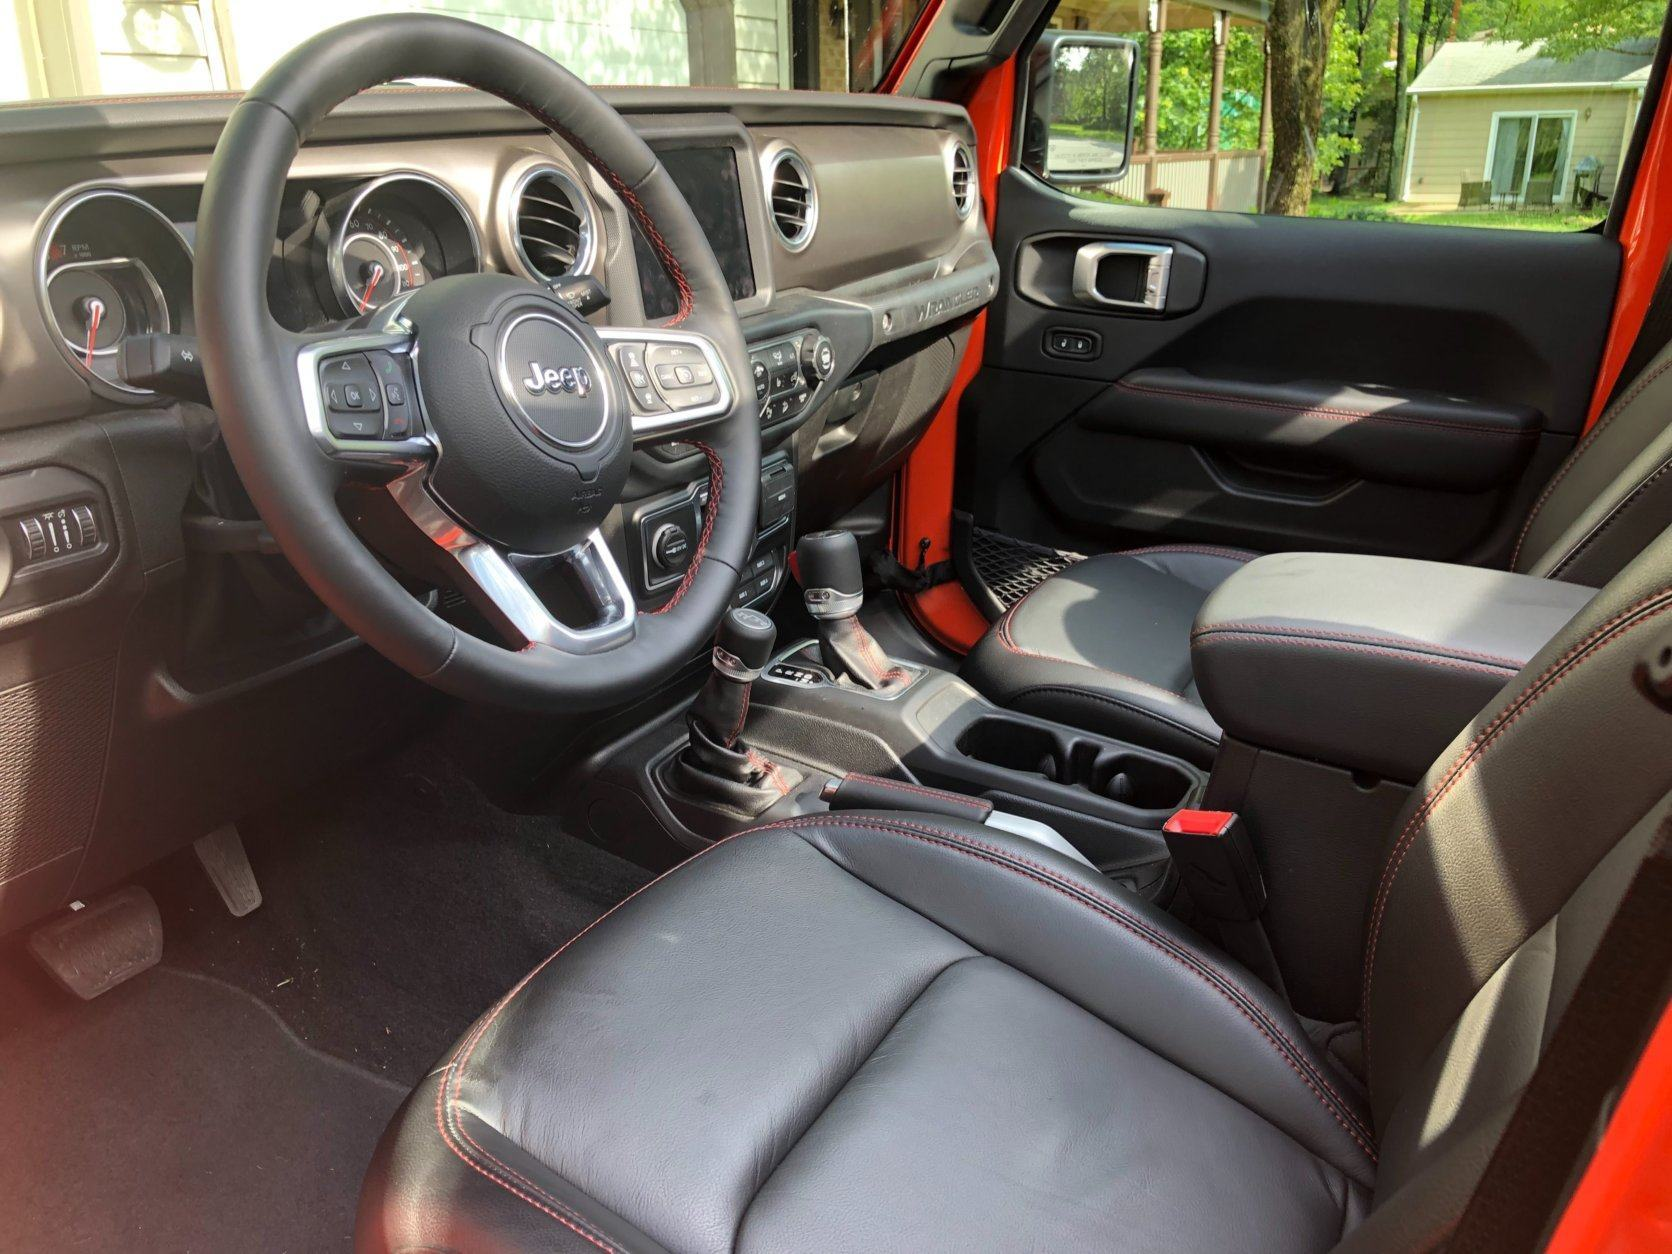 <p>The inside is also a nicer in 2019. Yes, much of that has to do with testing the Rubicon, one of the upper trim levels, with a price of $56,755 after nearly $15,000 in options. That extra cash buys you a nicer place to sit with leather seats, steering wheel, parking brake handle and shifter knob. Even the door panels are a higher quality. It would be a shame to get them muddy and dirty out on the trail.</p>